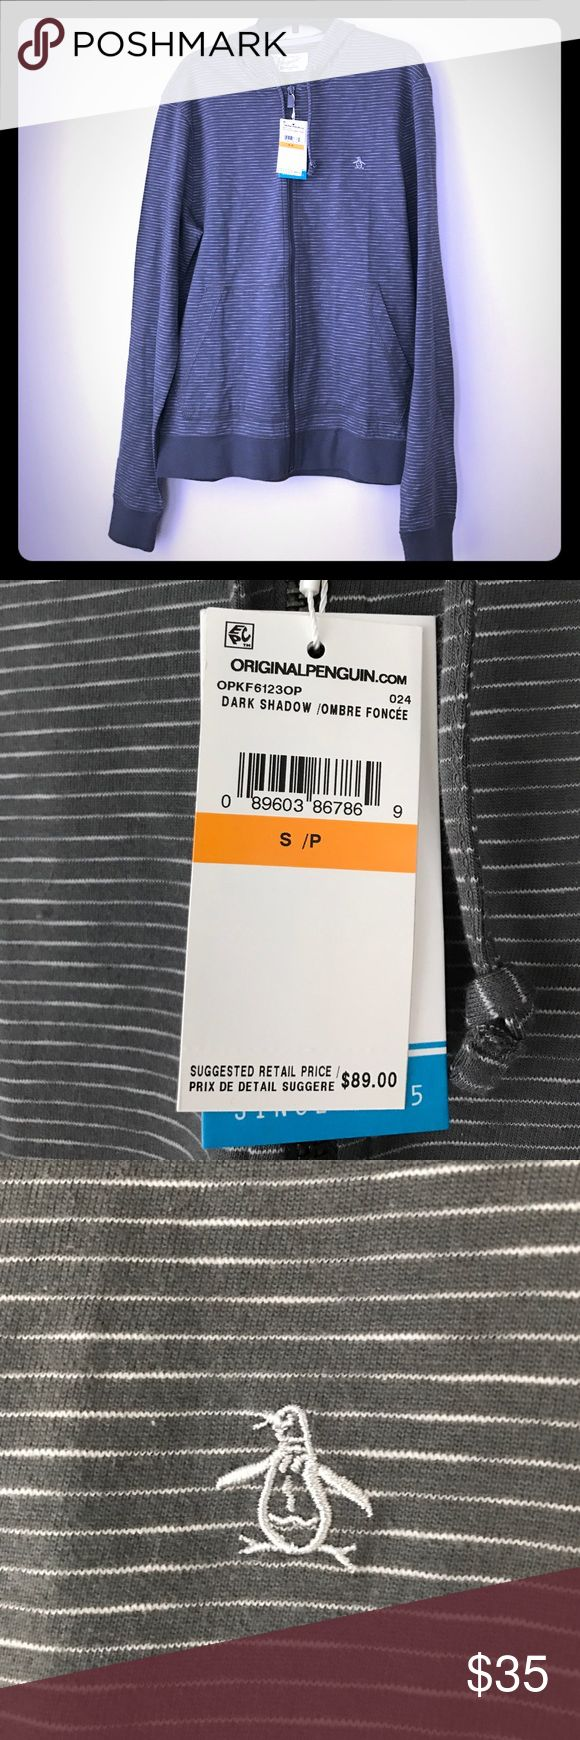 NWT Penguin brand gray/white striped zip hoodie Size small and perfect for Spring Original Penguin Shirts Sweatshirts & Hoodies